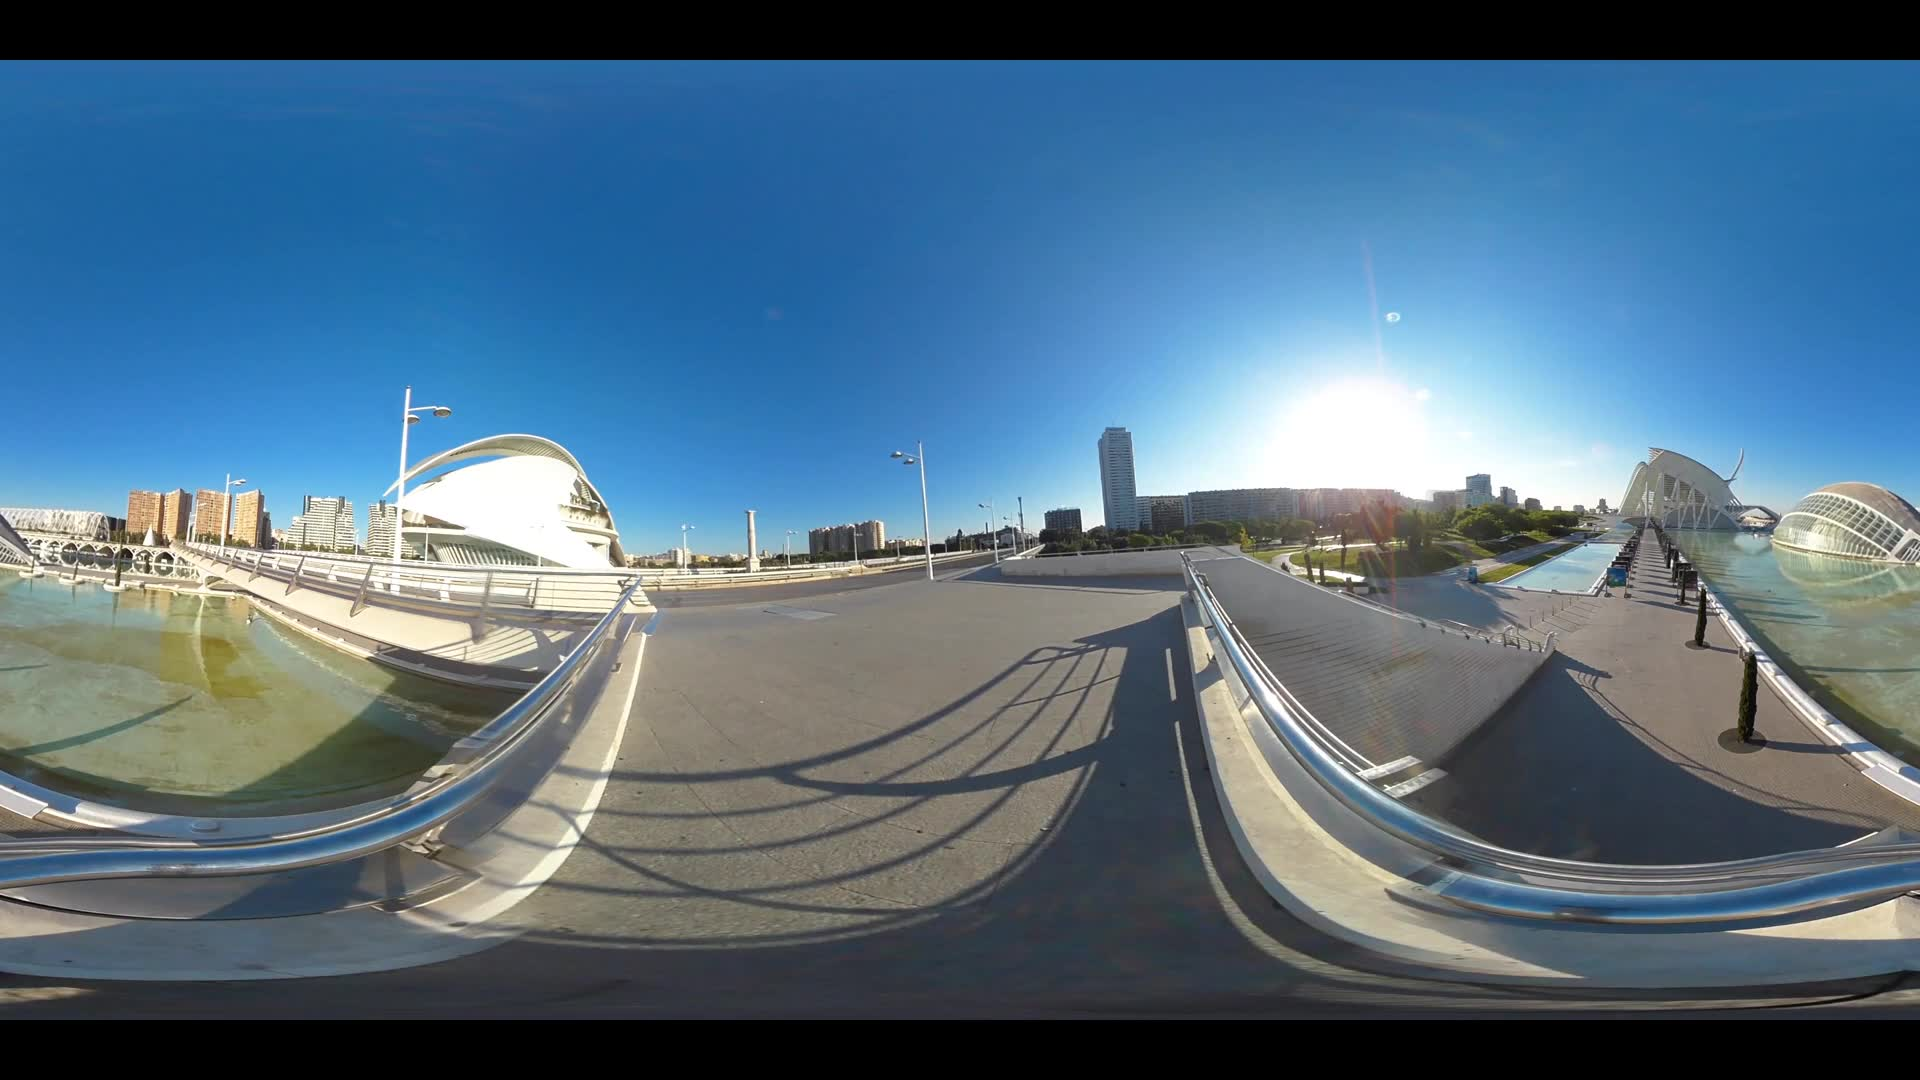 Virtual Reality 360 view from L'Hemisferic building and the Berklee College of Music at the City of Arts and Sciences in Valencia Spain